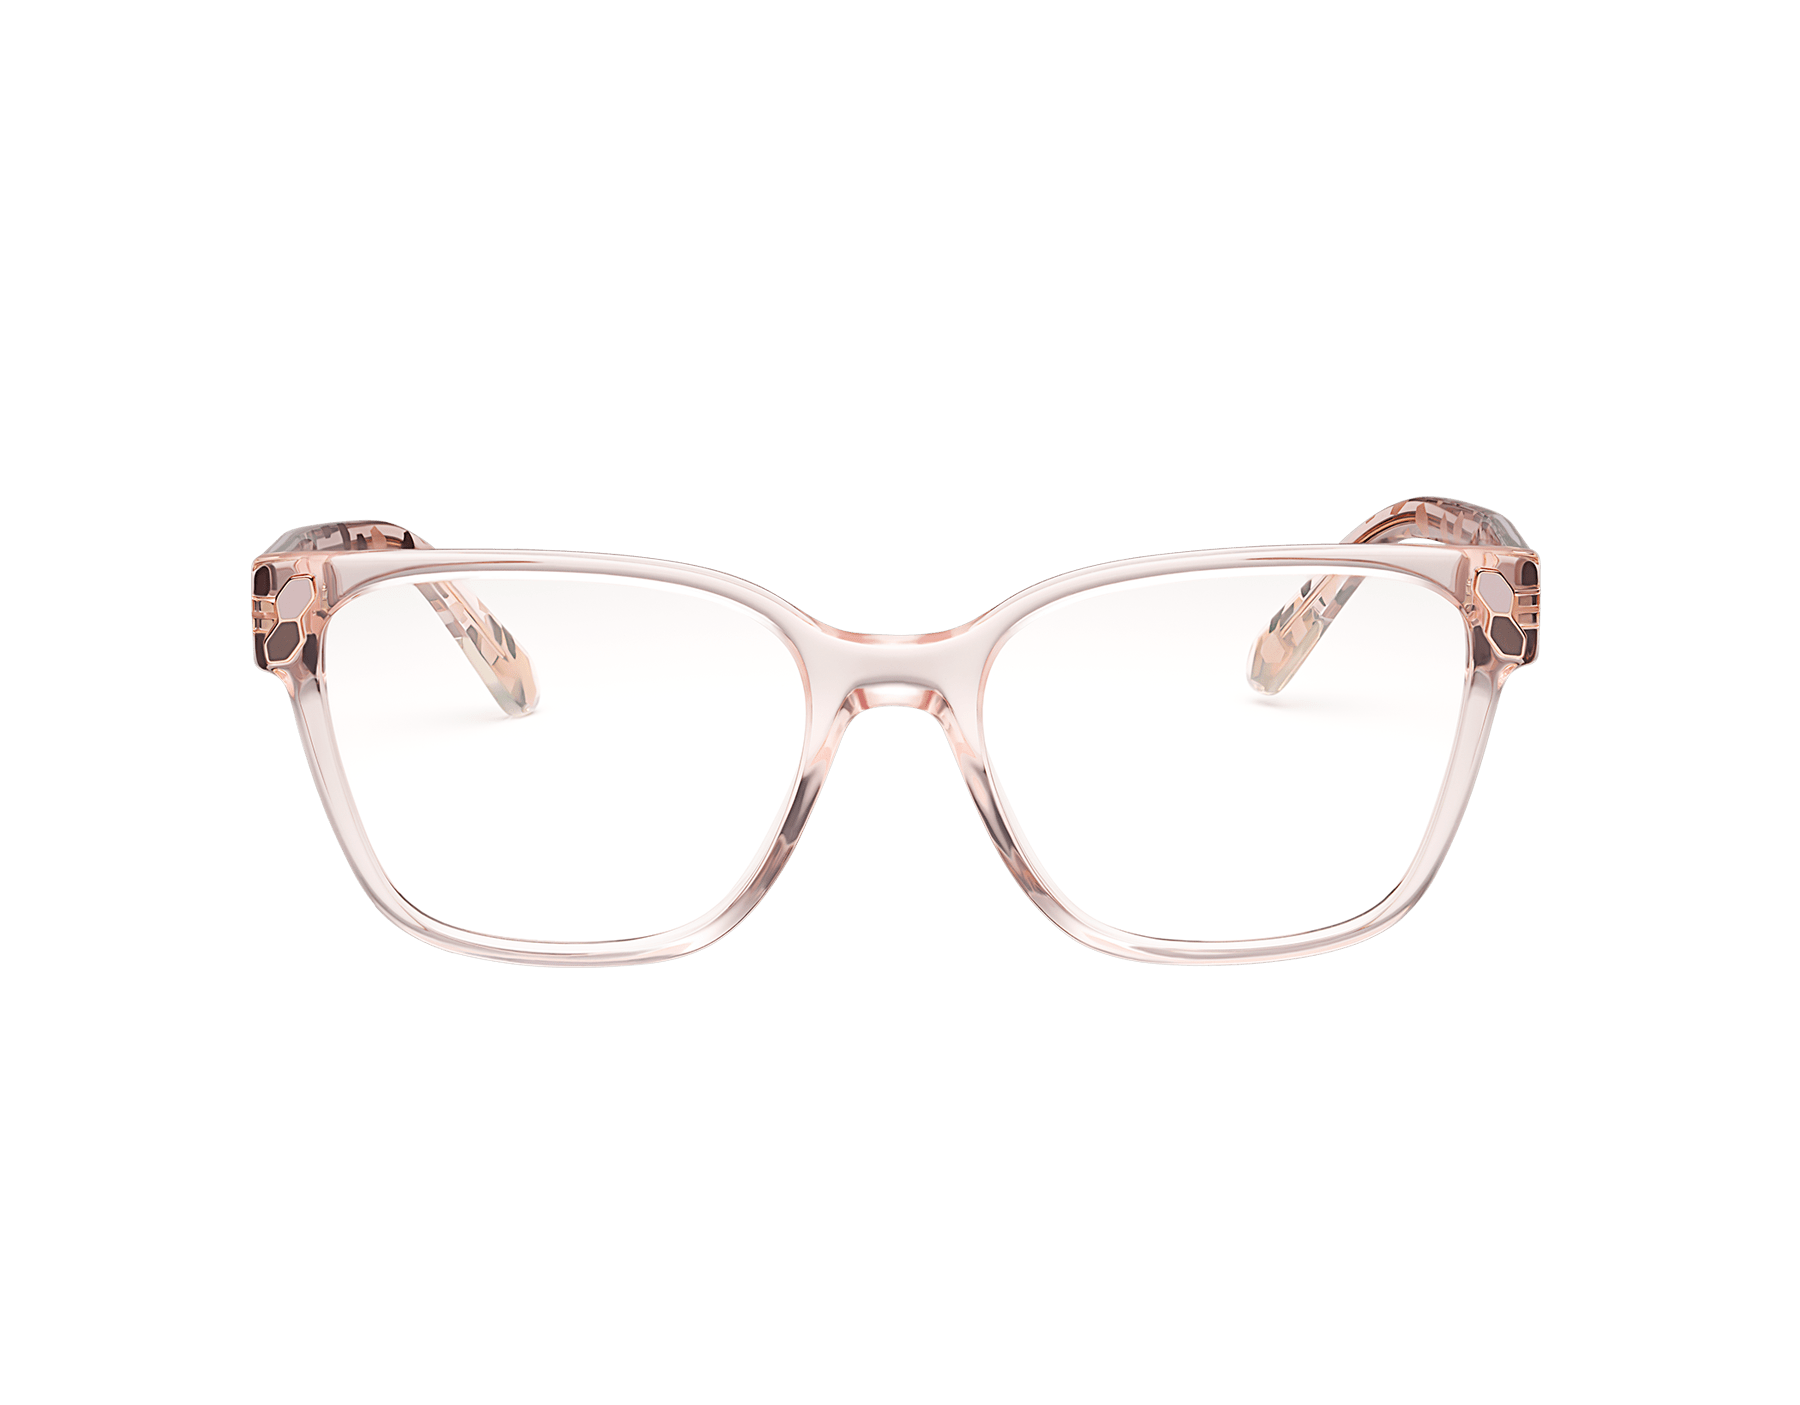 Serpenti soft rectangular acetate eyeglasses. 903550 image 2